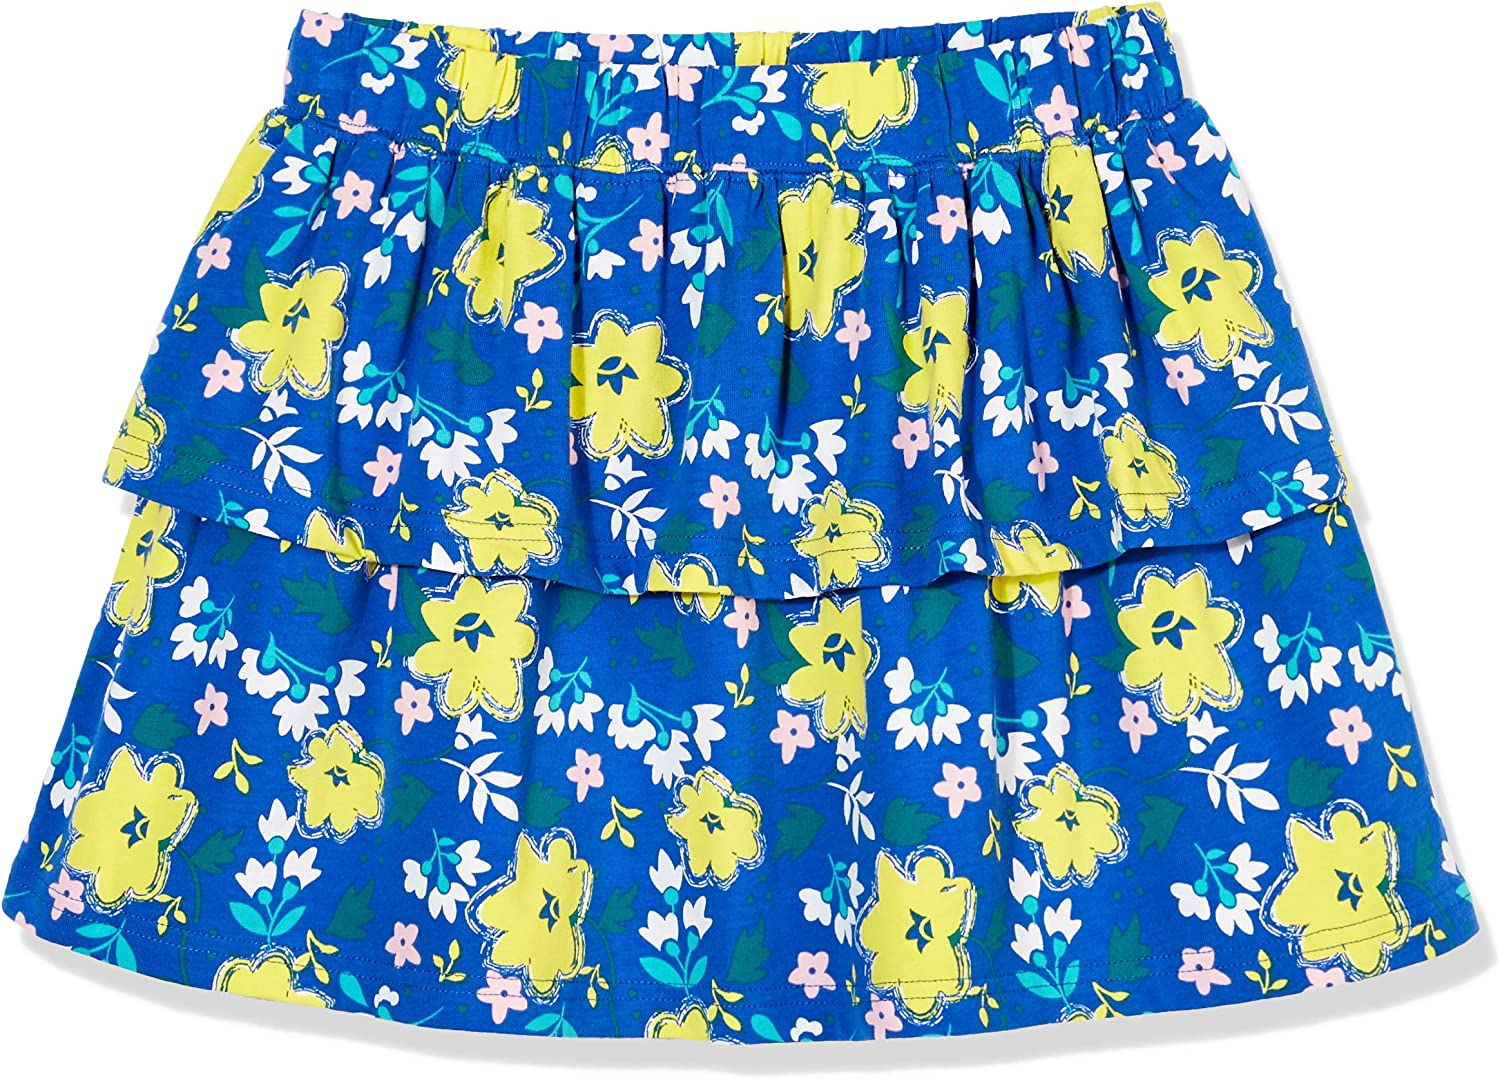 A for Max 56% OFF Awesome Girls Tiered Skirt Ruffle Fees free!!